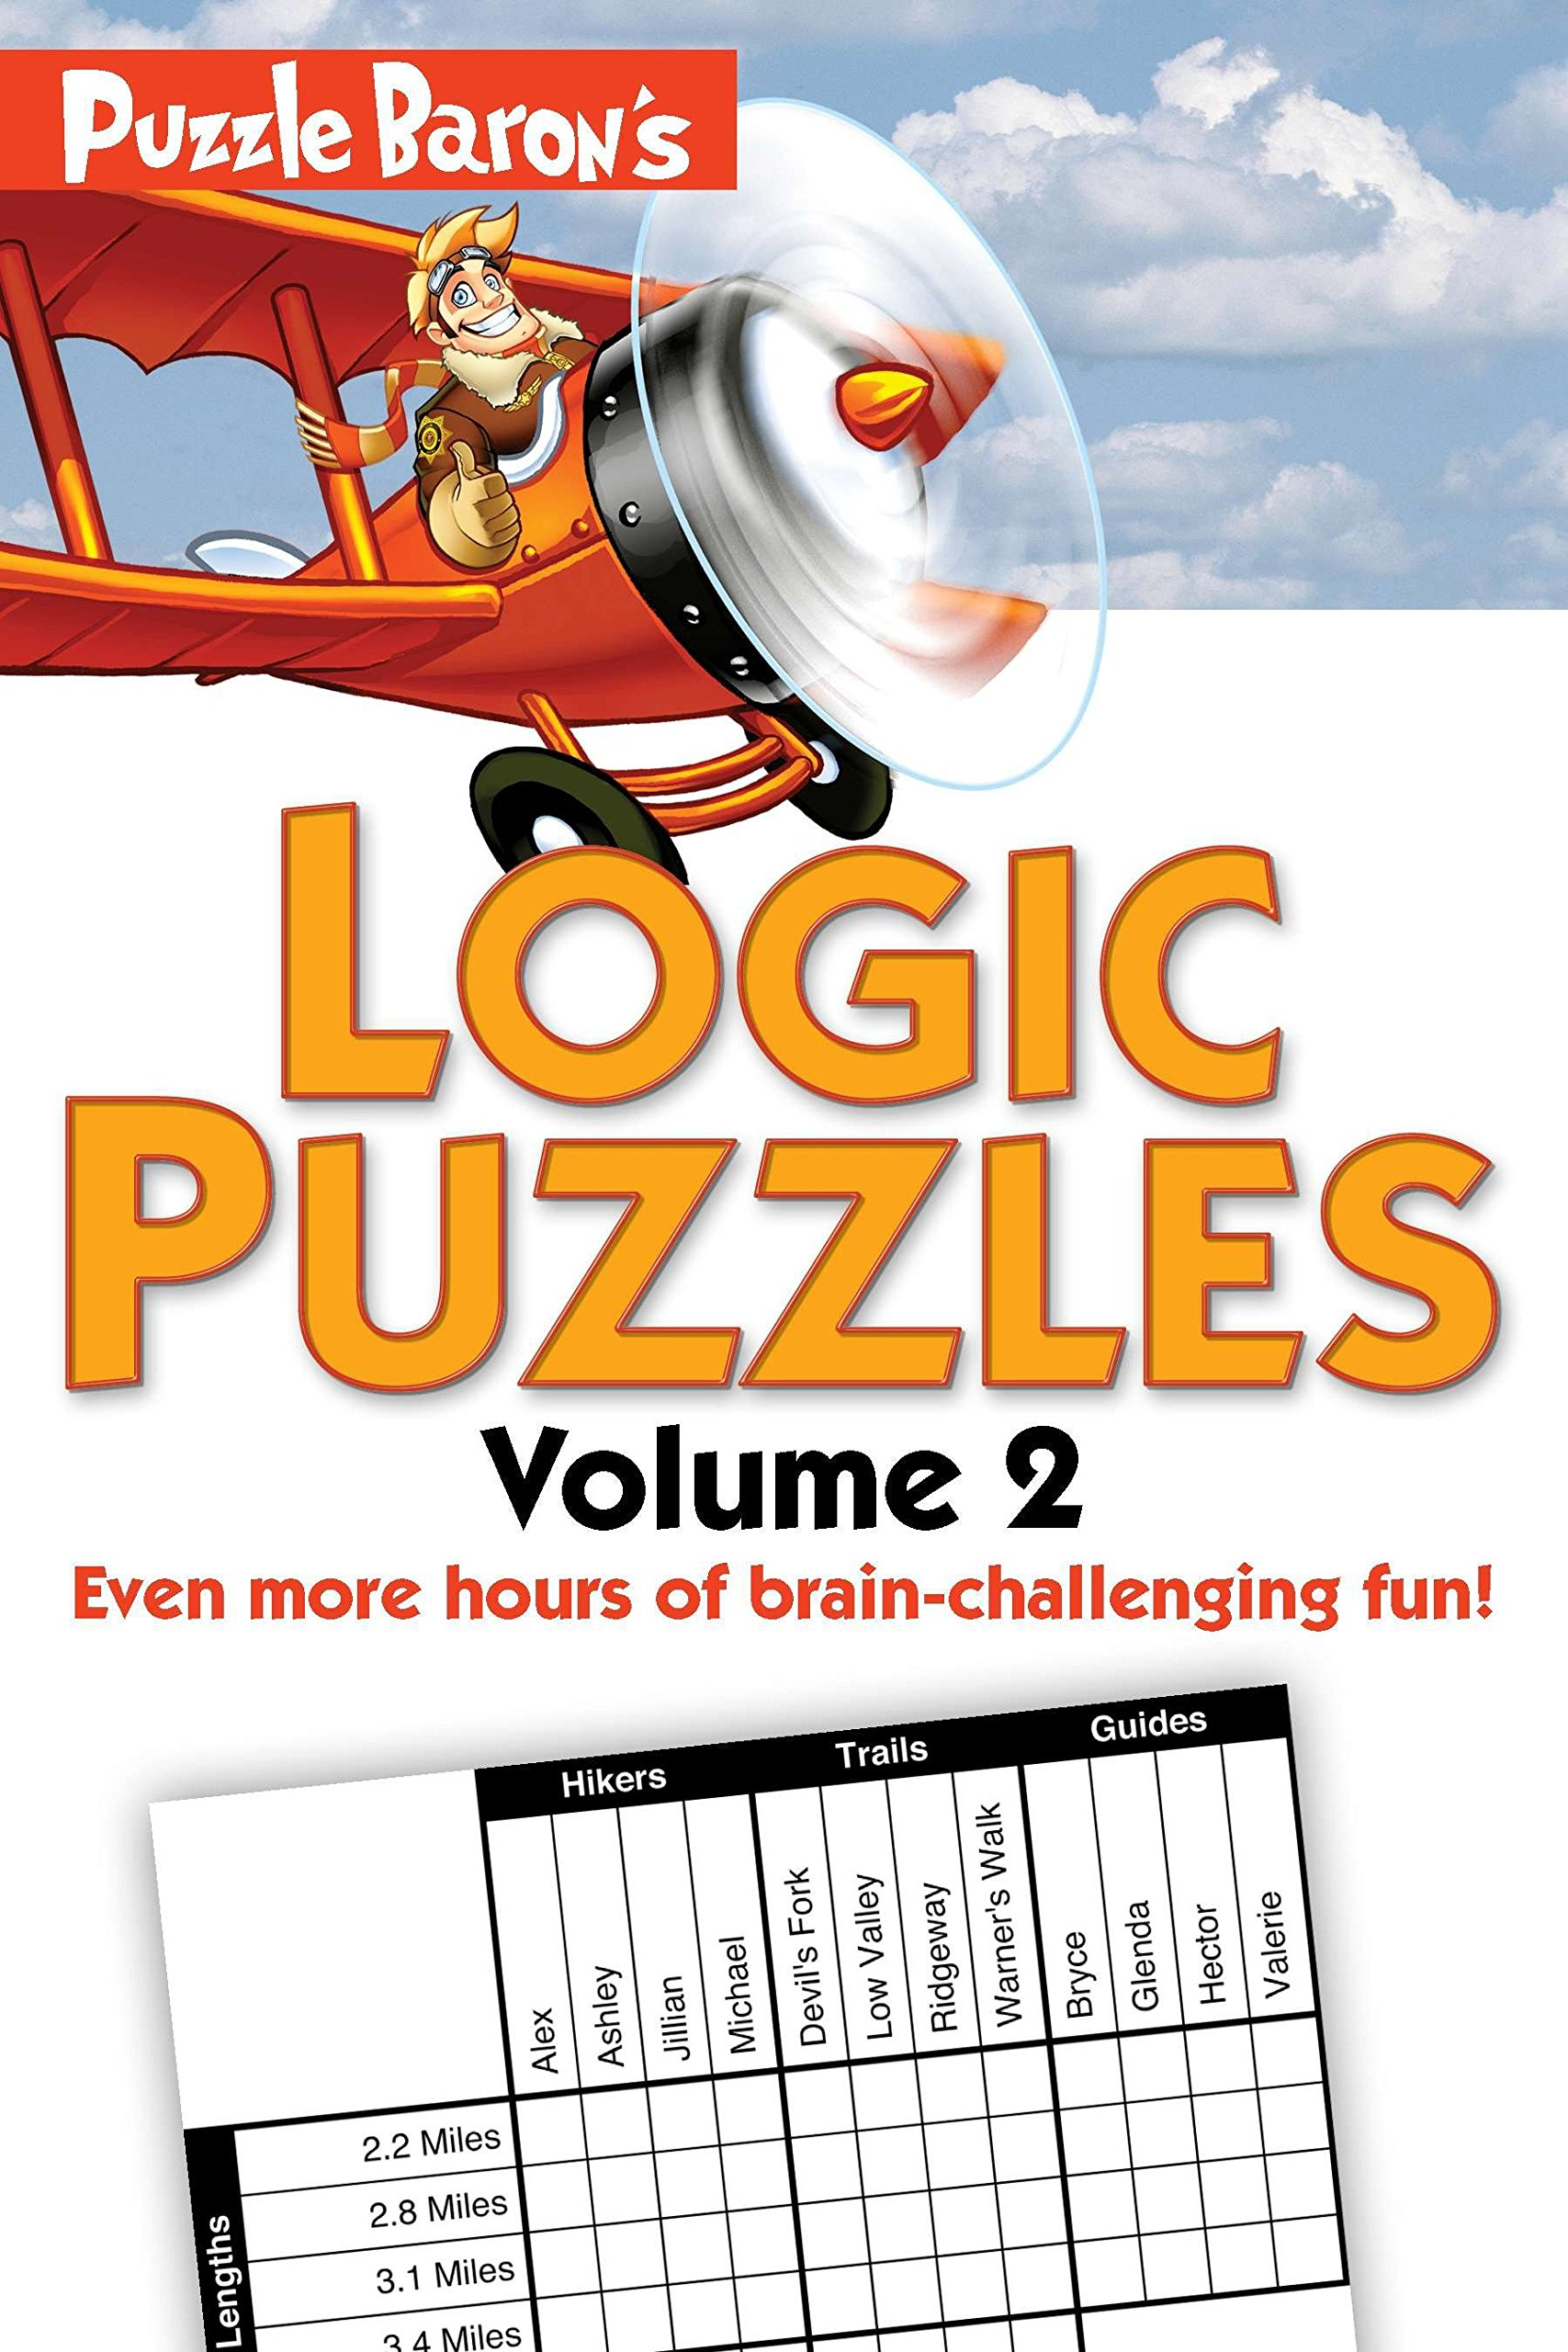 Puzzle Baron's Logic Puzzles, Volume 2: More Hours of Brain-Challenging Fun! Paperback – February 7, 2012 Alpha 1615641521 Logic & Brain Teasers GENERAL